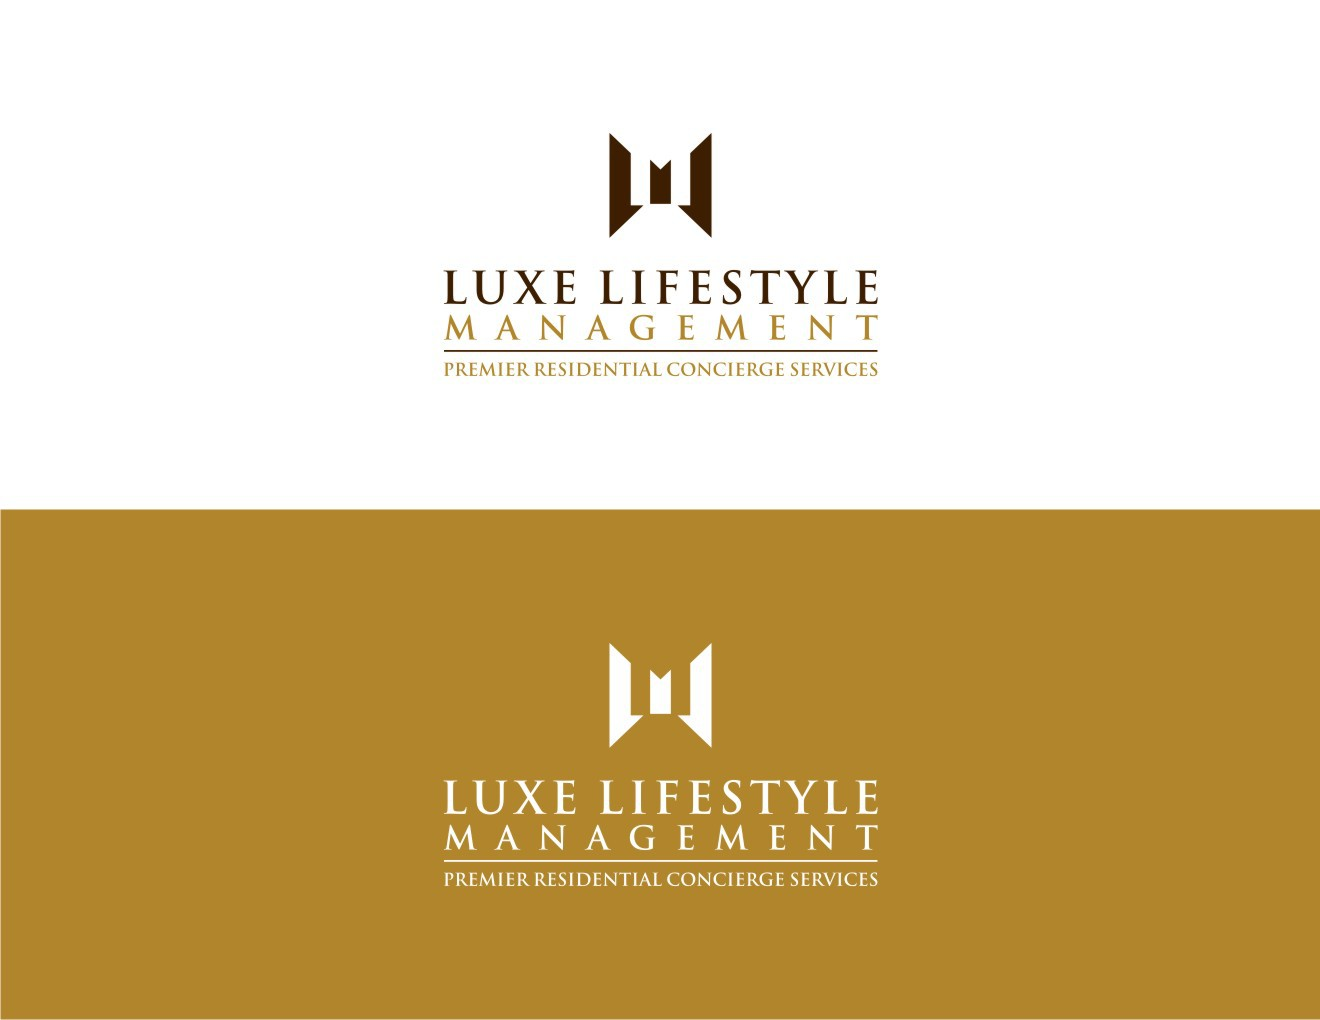 Create a sophisticated and elegant logo for a high end residential concierge service